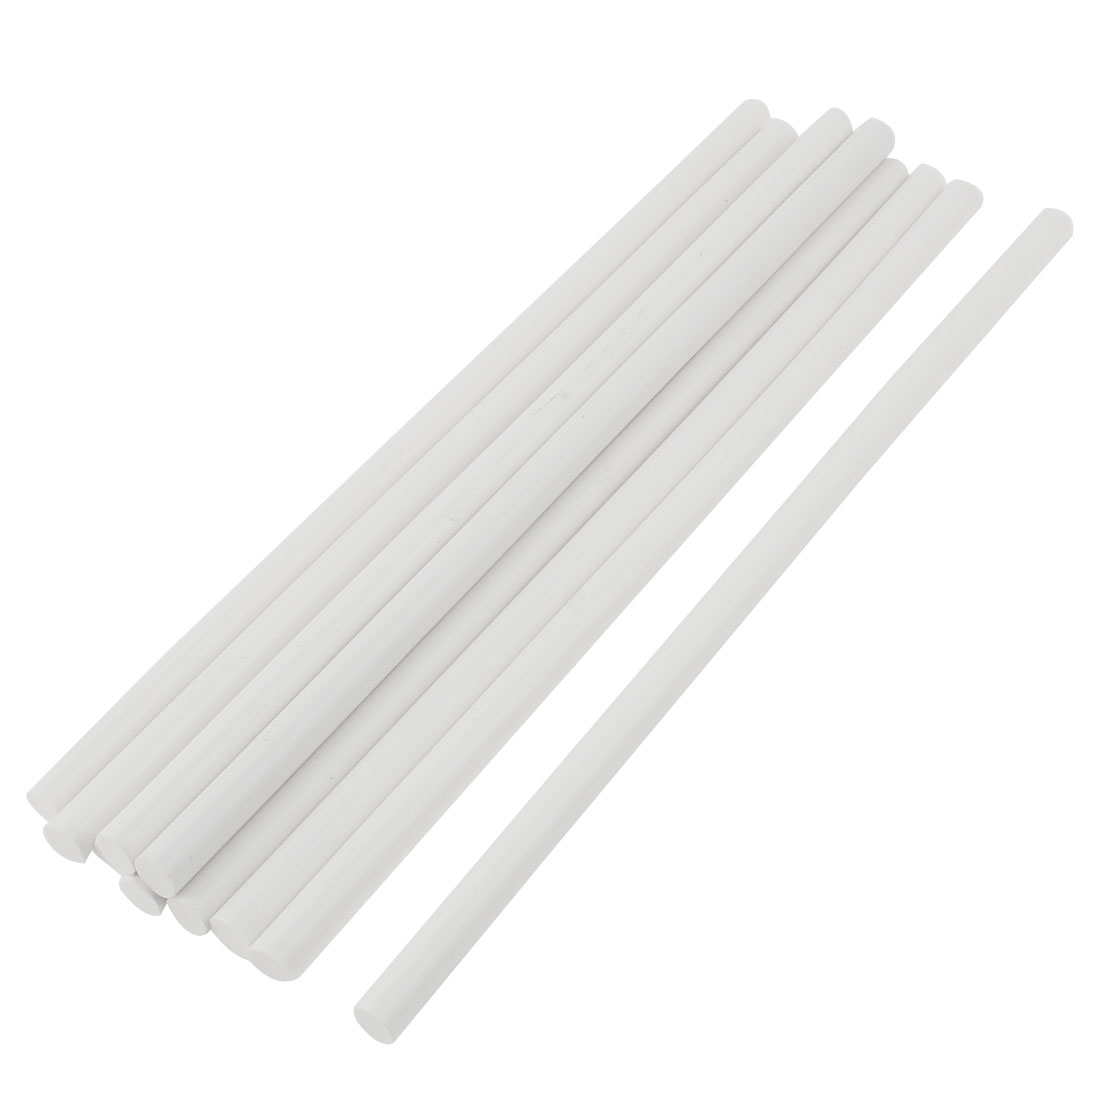 10 Pcs Oyster White 11mmx310mm Soldering Iron Hot Melt Glue Stick Replacement